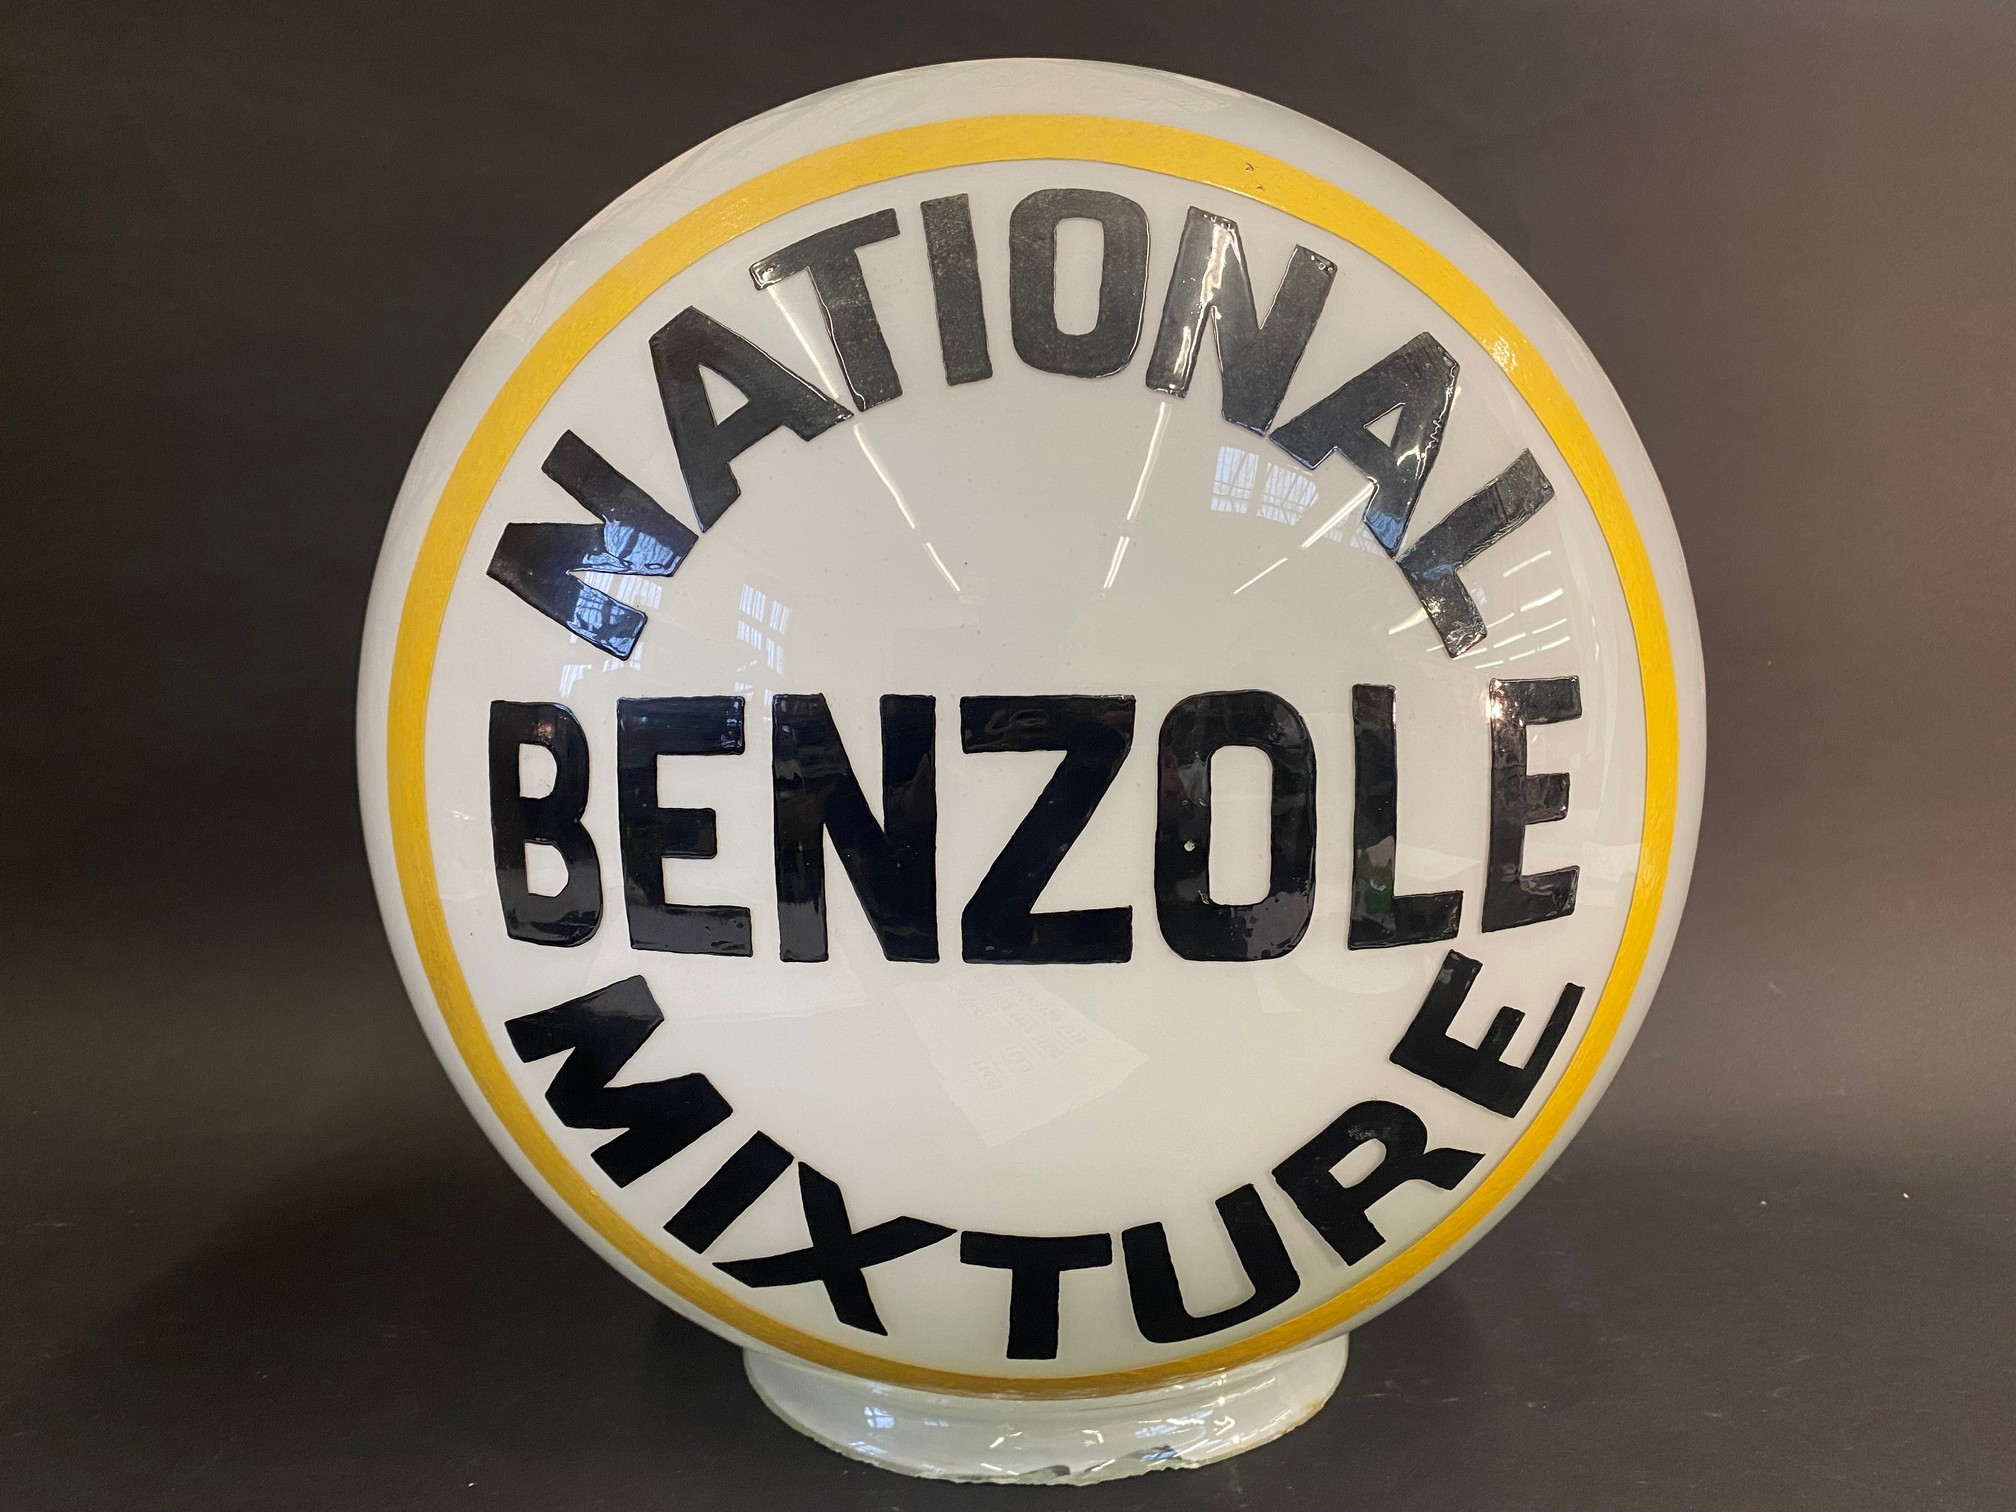 A National Benzole Mixture spherical glass petrol pump/post globe, larger neck version, repainted